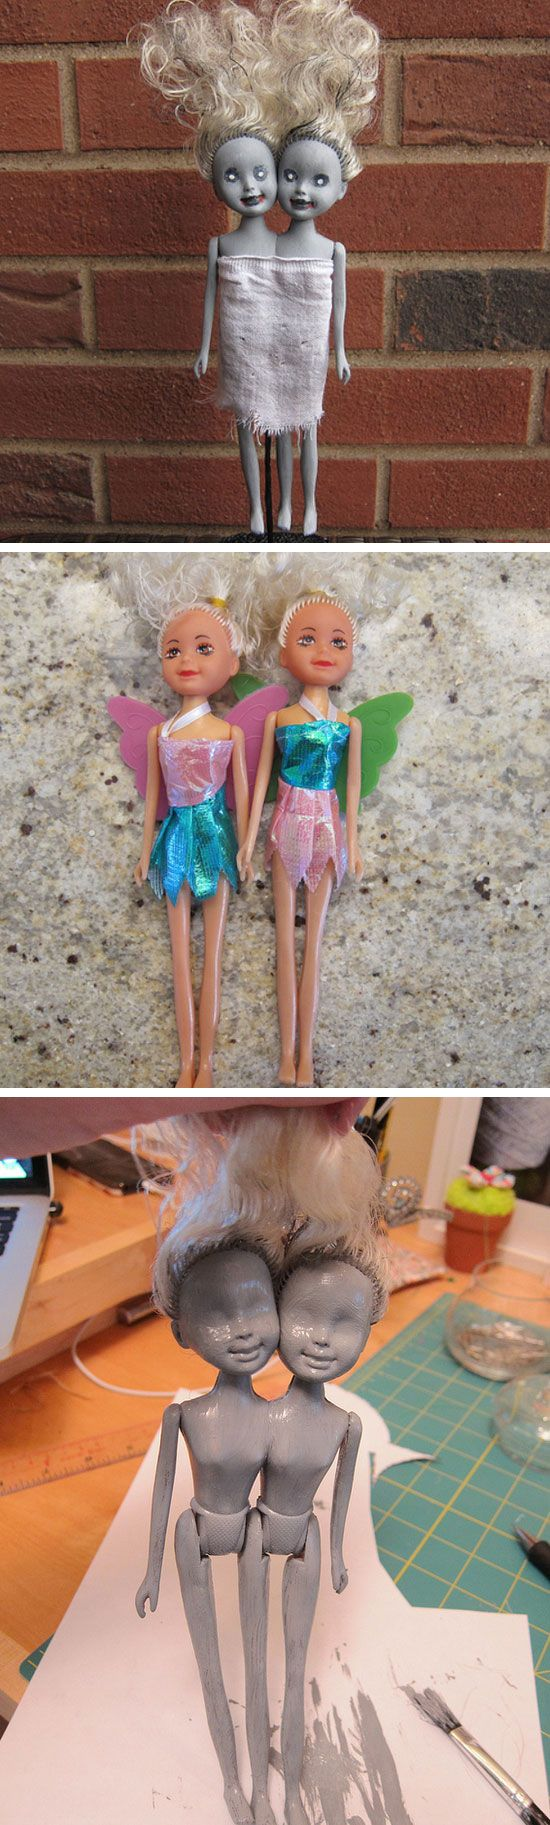 DIY Zombie Siamese Twin Dolls.